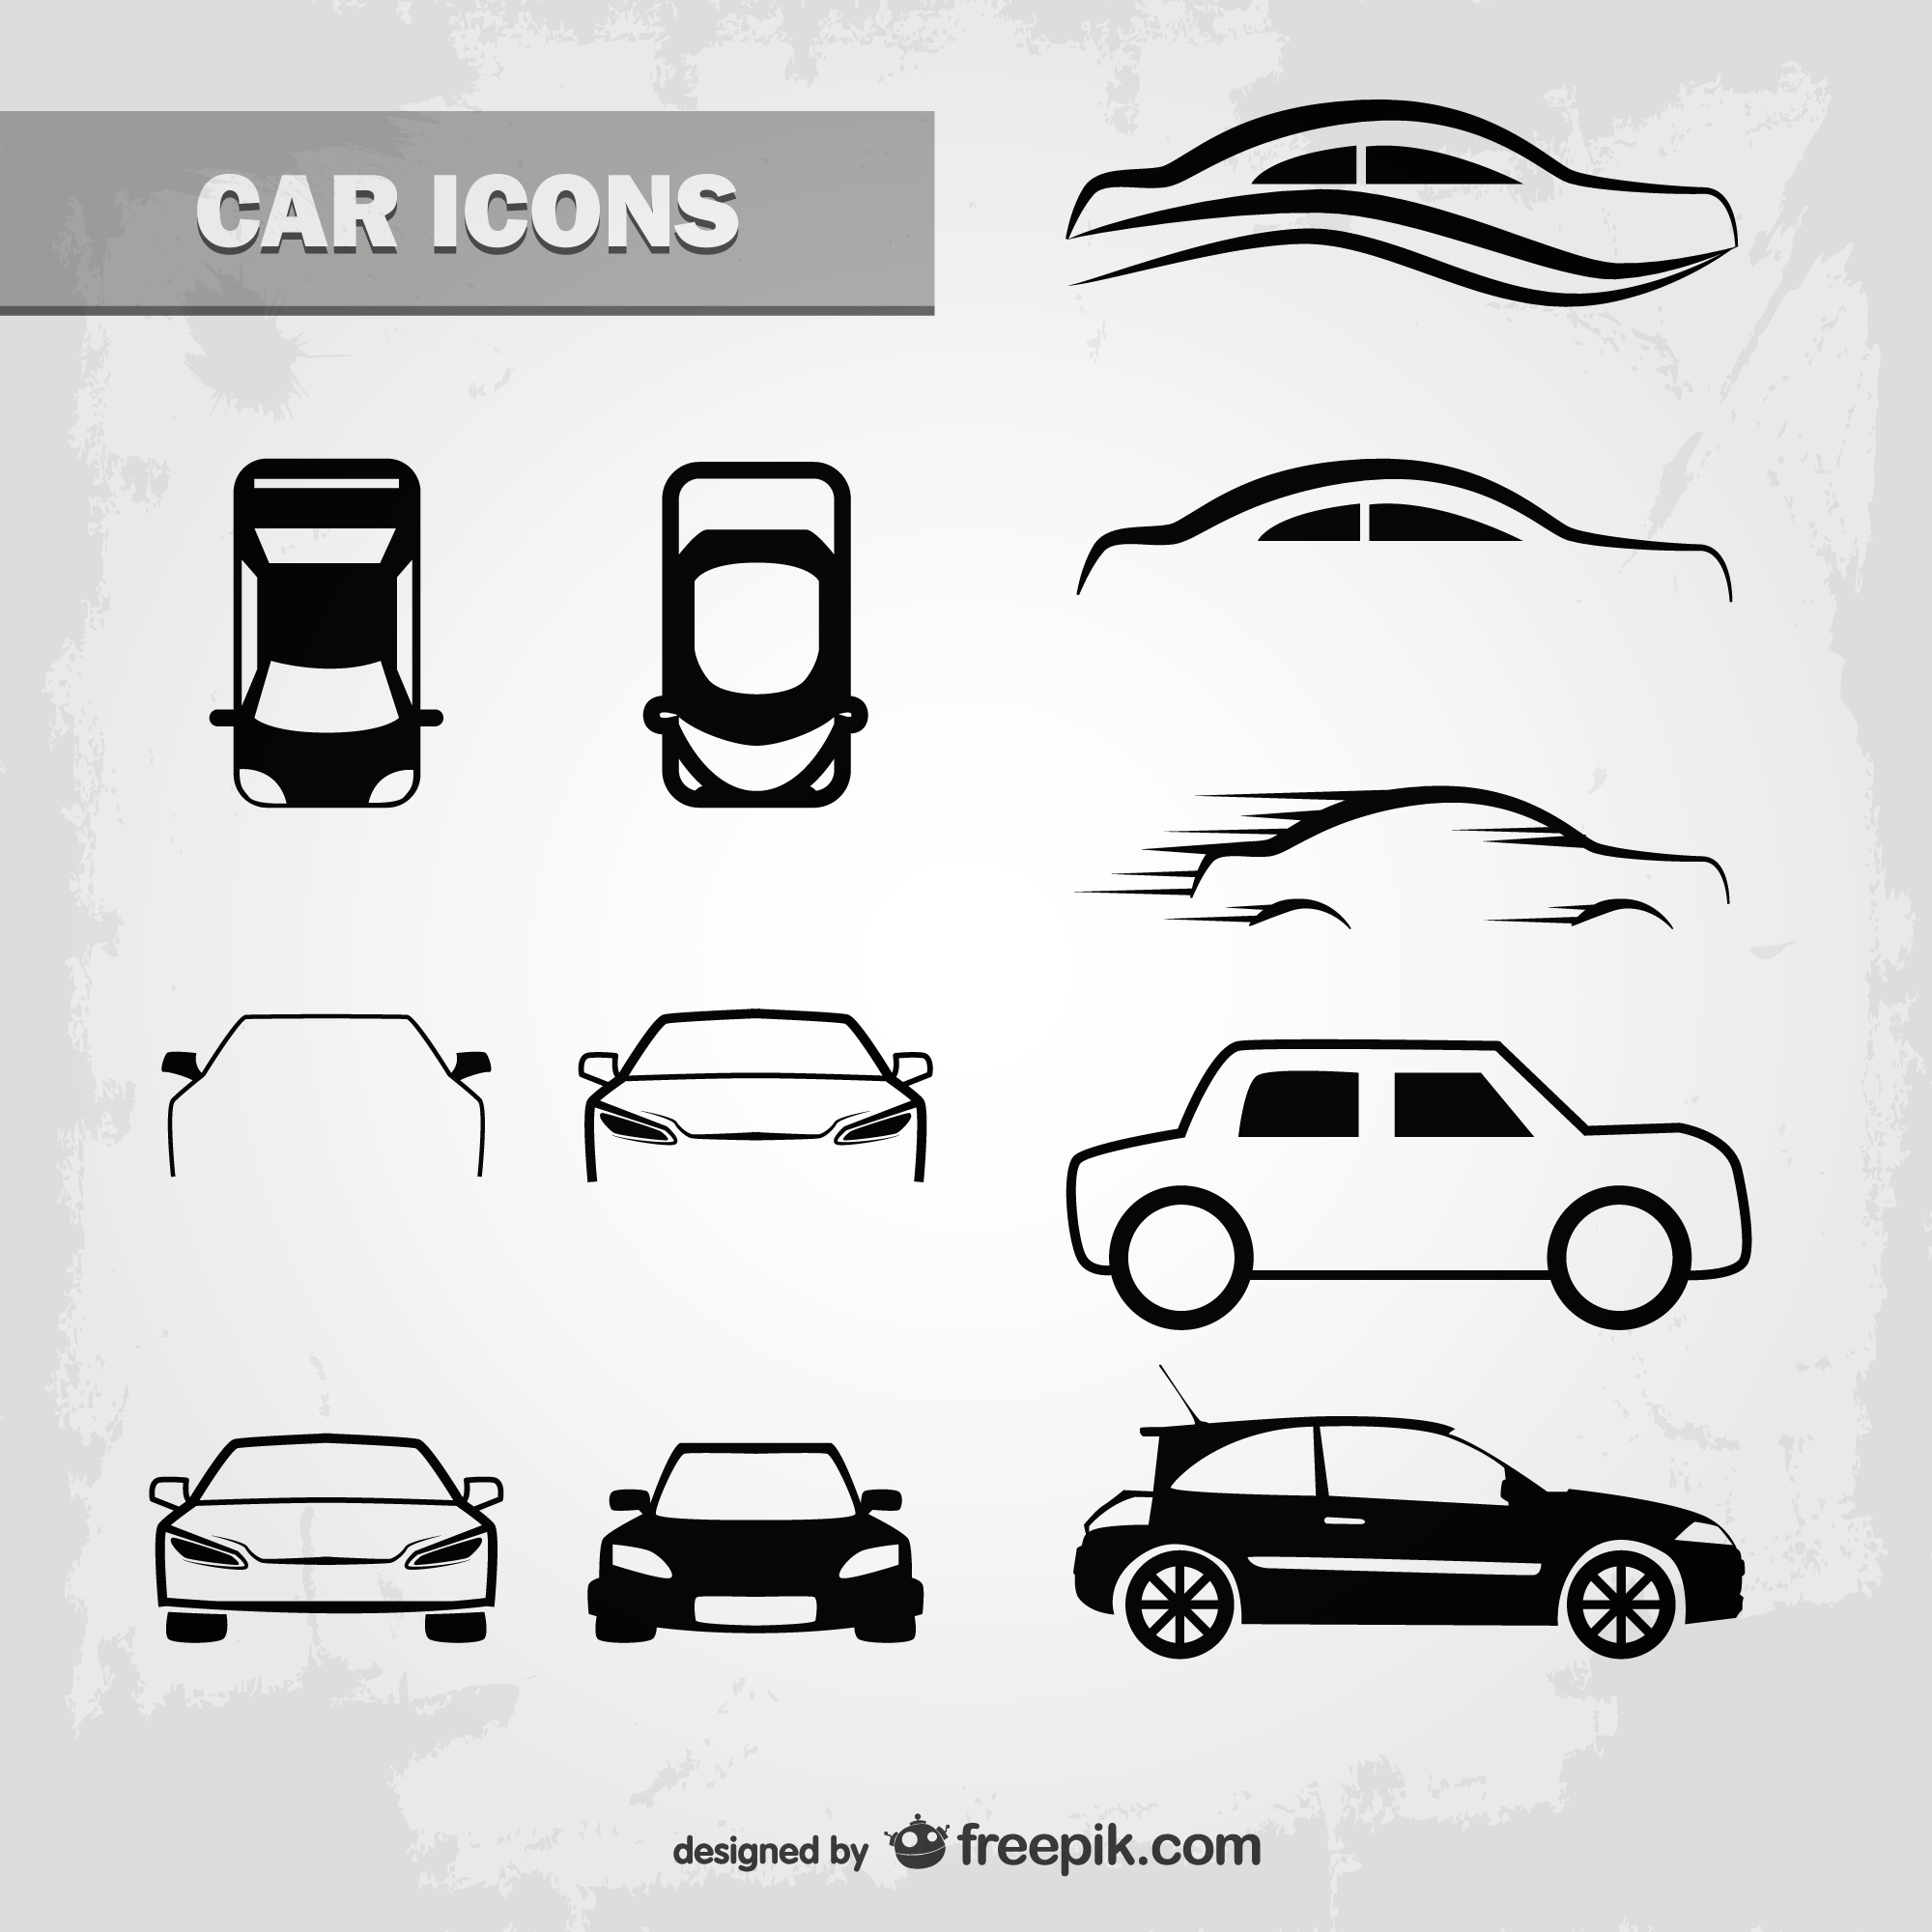 Outlined car icons